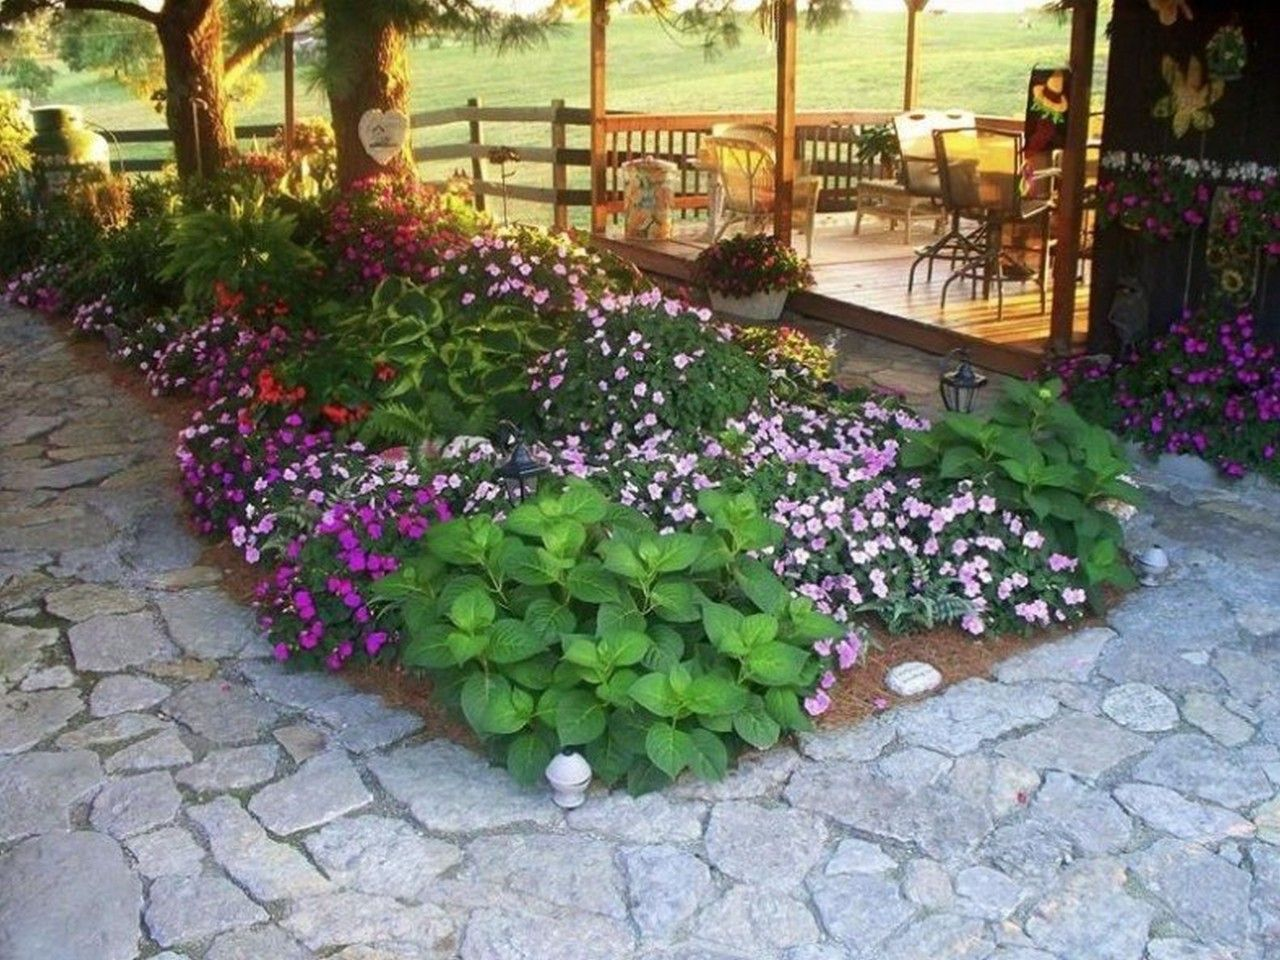 shade tree flower beds small backyard garden ideas backyard garden examples backyard picture - Garden Examples Photos